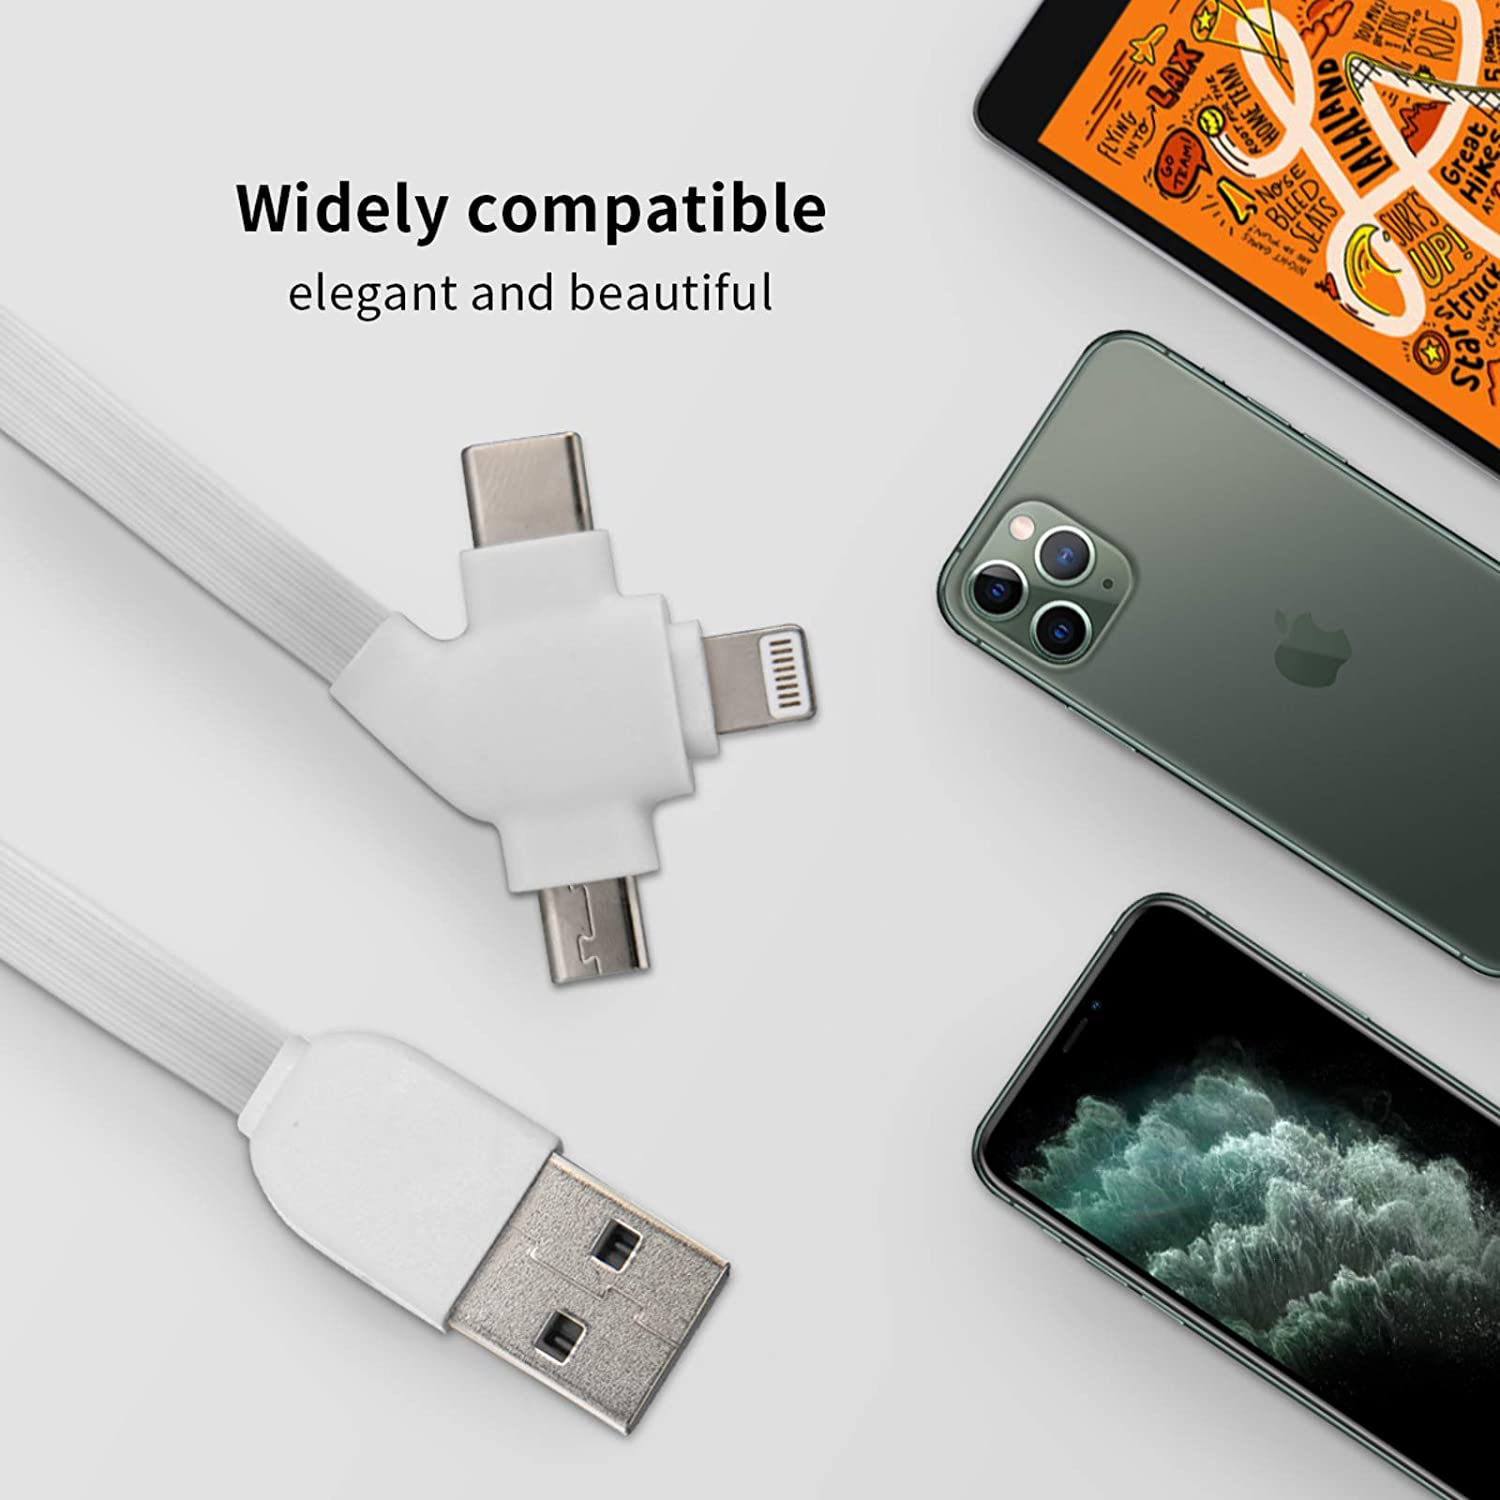 Easter Yellow Pink Egg Russianthe Square Three-in-One USB Cable is A Universal Interface Charging Cable Suitable for Various Mobile Phones and Tablets